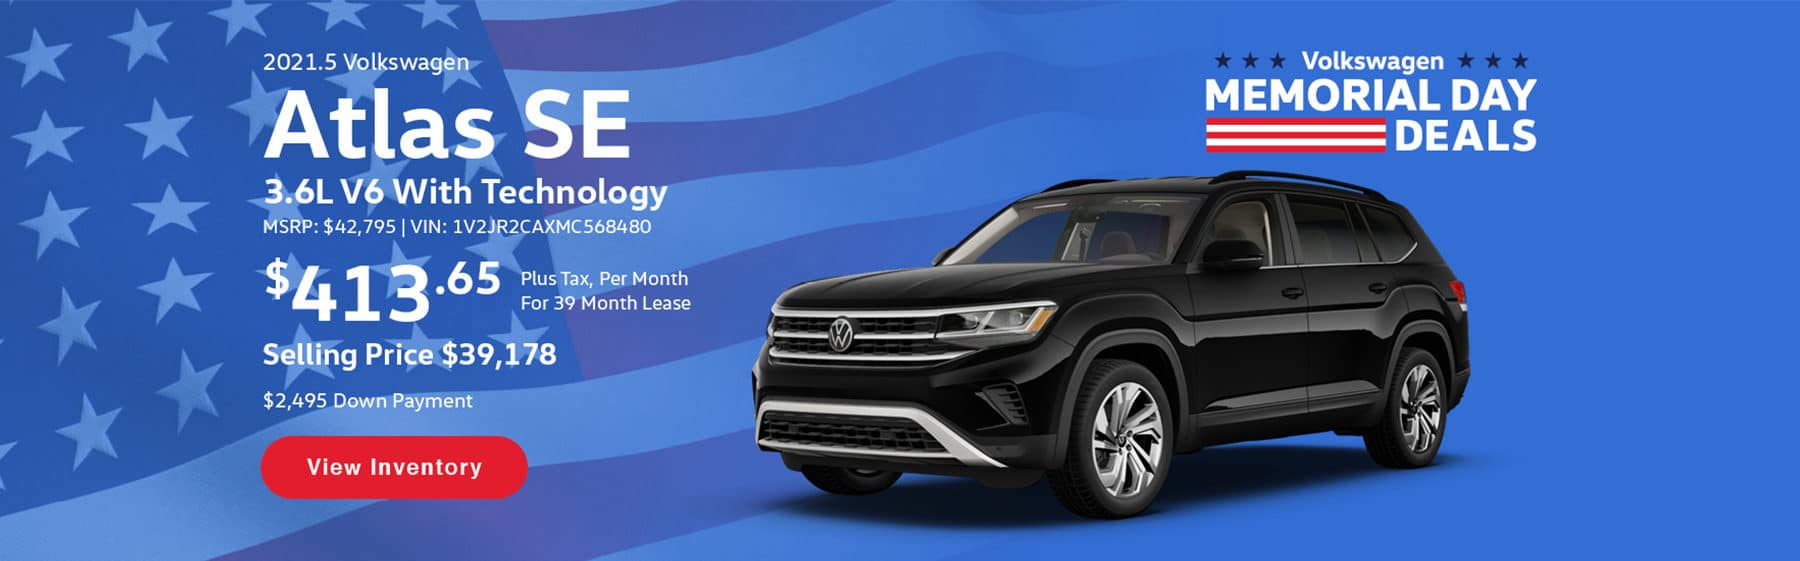 Lease the 2021 Volkswagen Atlas 3.6L V6 SE with Technology for $413.65 per month, plus tax, for 39 months. Selling price is $39,178.